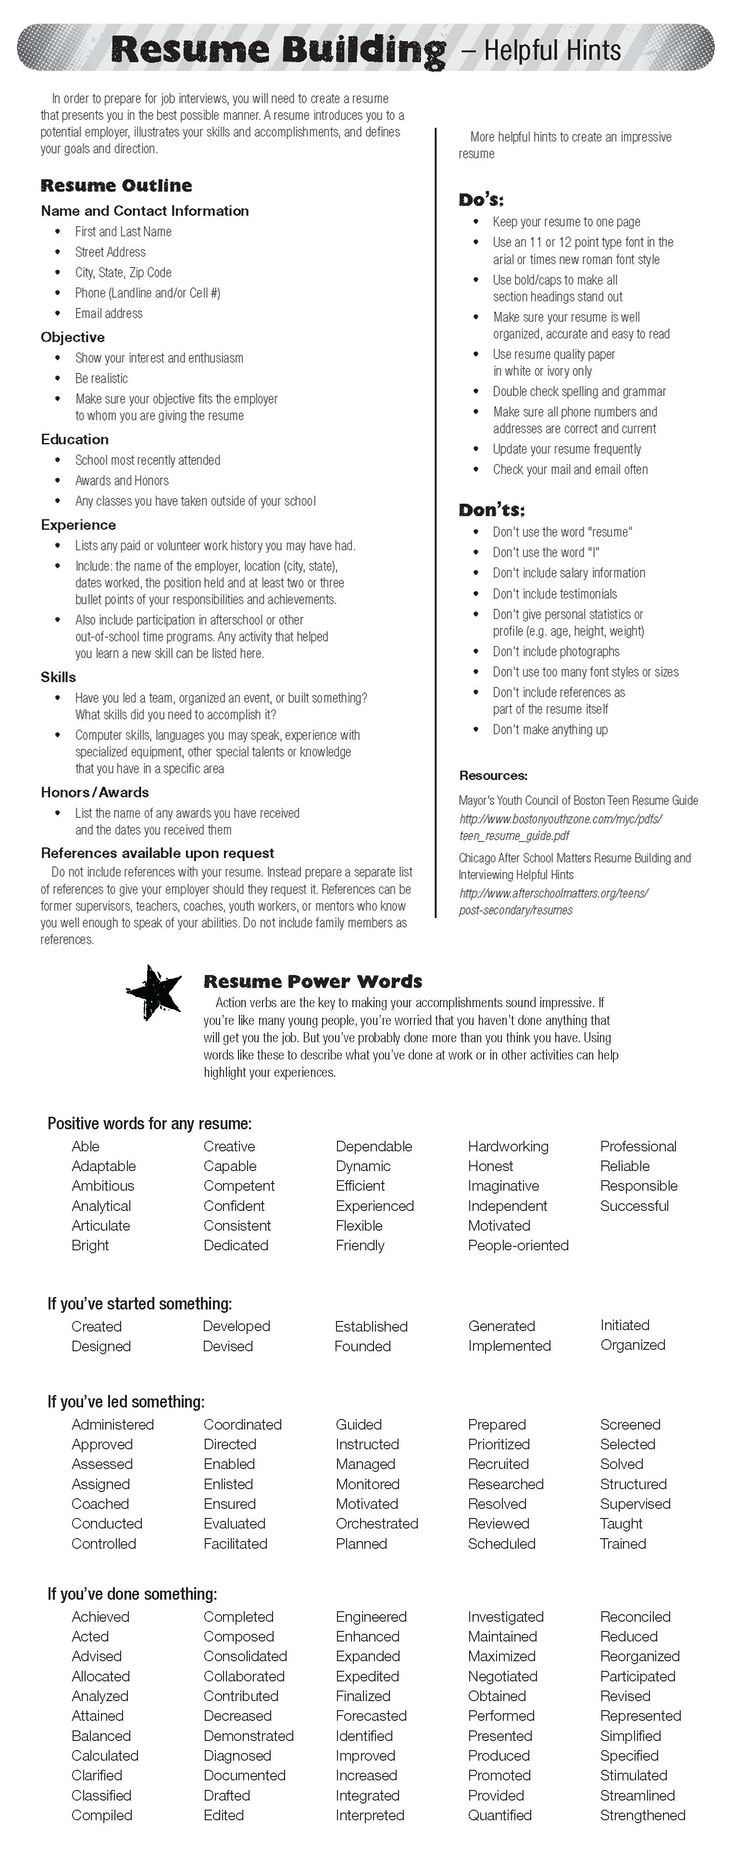 Picnictoimpeachus  Scenic  Ideas About Resume On Pinterest  Cv Format Resume  With Luxury Check Out Todays Resume Building Tips Resume Resumepowerwords With Appealing Acting Resume Template For Microsoft Word Also Environmental Science Resume In Addition Resume Skill Section And Best Words To Use On A Resume As Well As A Sample Resume Additionally Make My Own Resume From Pinterestcom With Picnictoimpeachus  Luxury  Ideas About Resume On Pinterest  Cv Format Resume  With Appealing Check Out Todays Resume Building Tips Resume Resumepowerwords And Scenic Acting Resume Template For Microsoft Word Also Environmental Science Resume In Addition Resume Skill Section From Pinterestcom